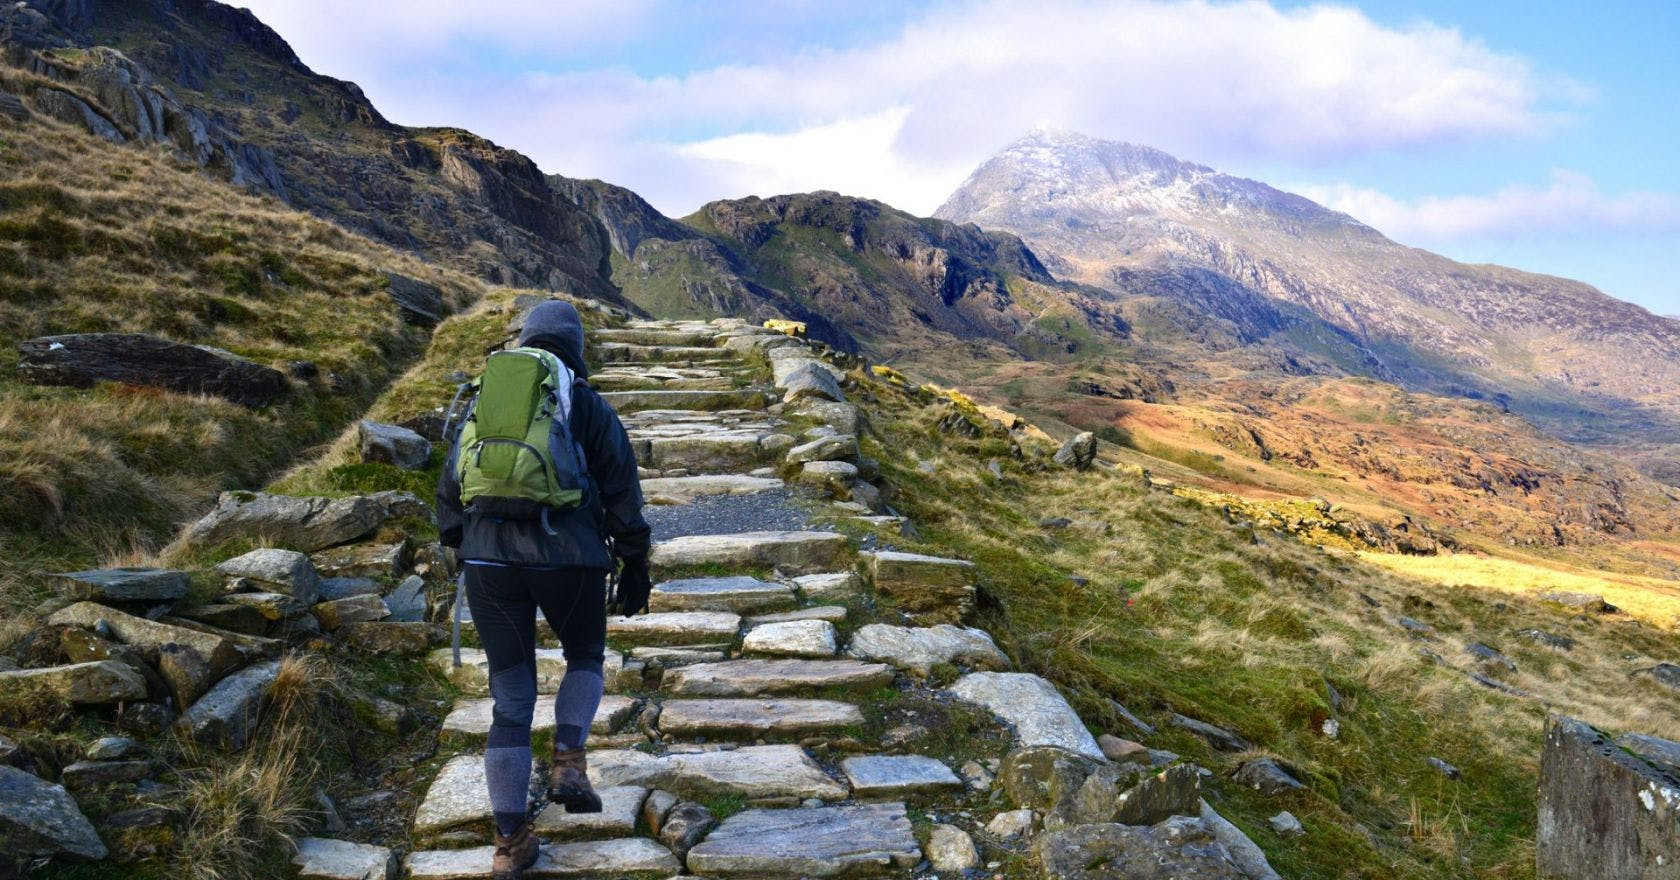 Instagrammers say these are the most picturesque walks in the UK